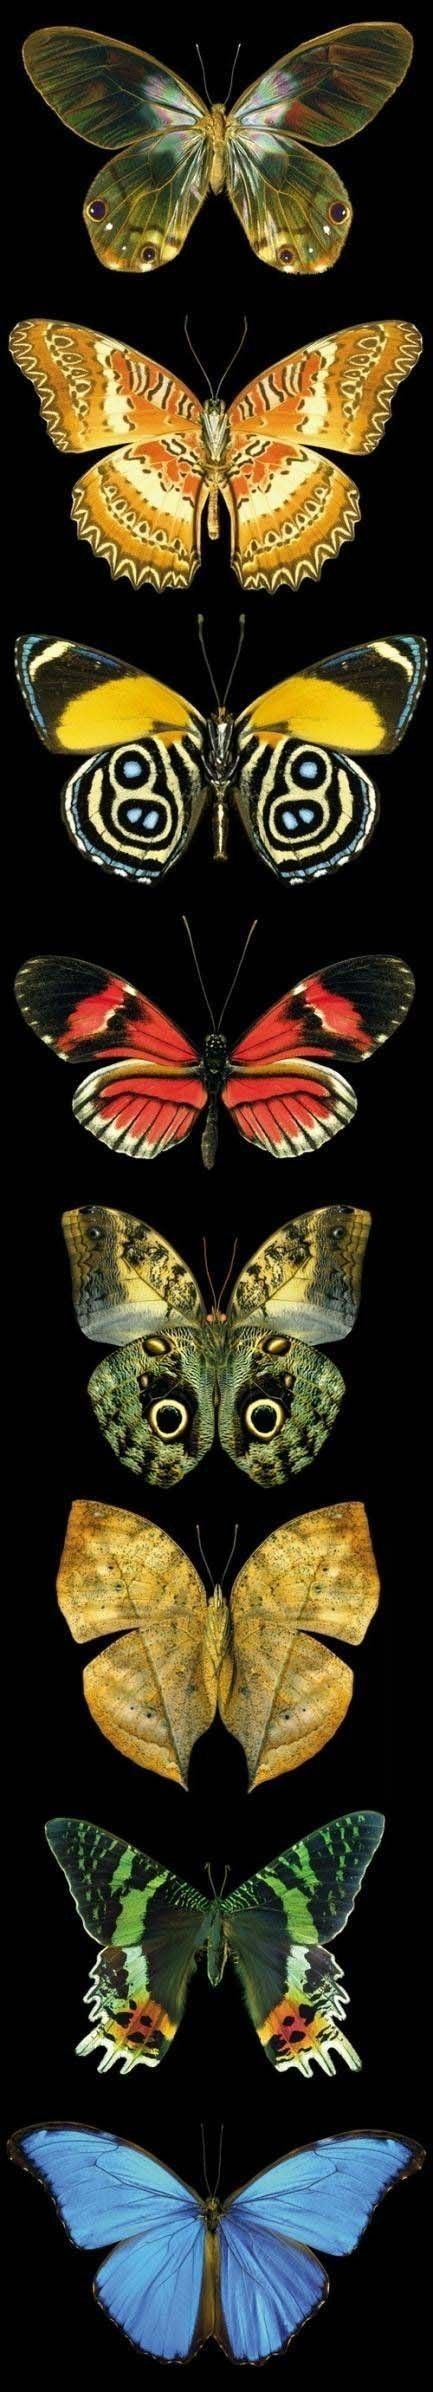 Butterfly collection | House of Beccaria~